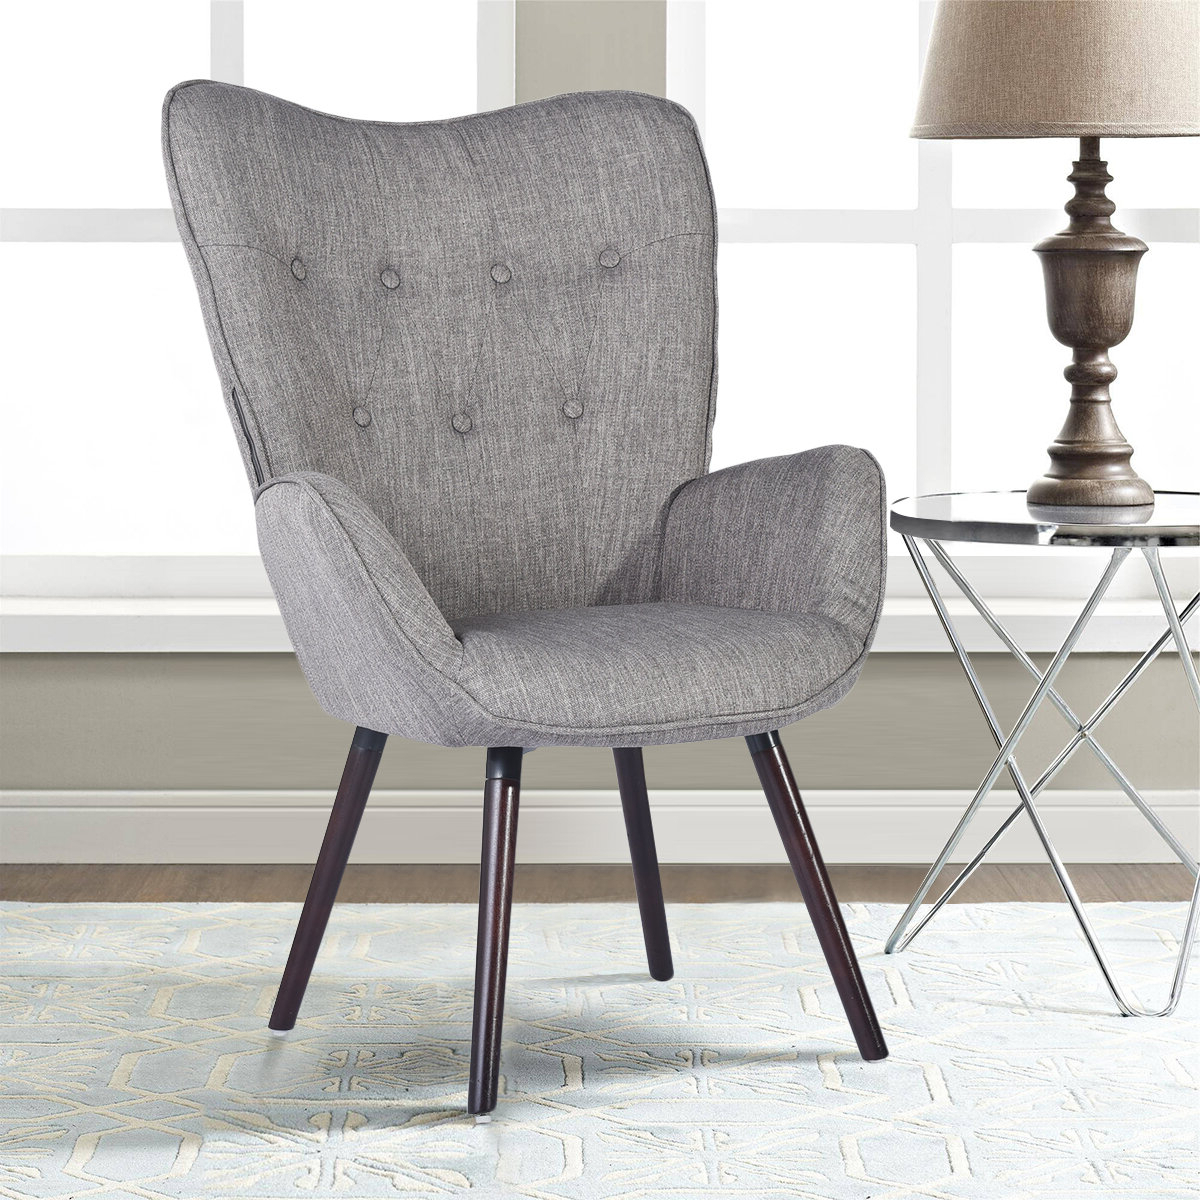 Armory Fabric Armchairs For Best And Newest Channel Armchair (View 5 of 20)